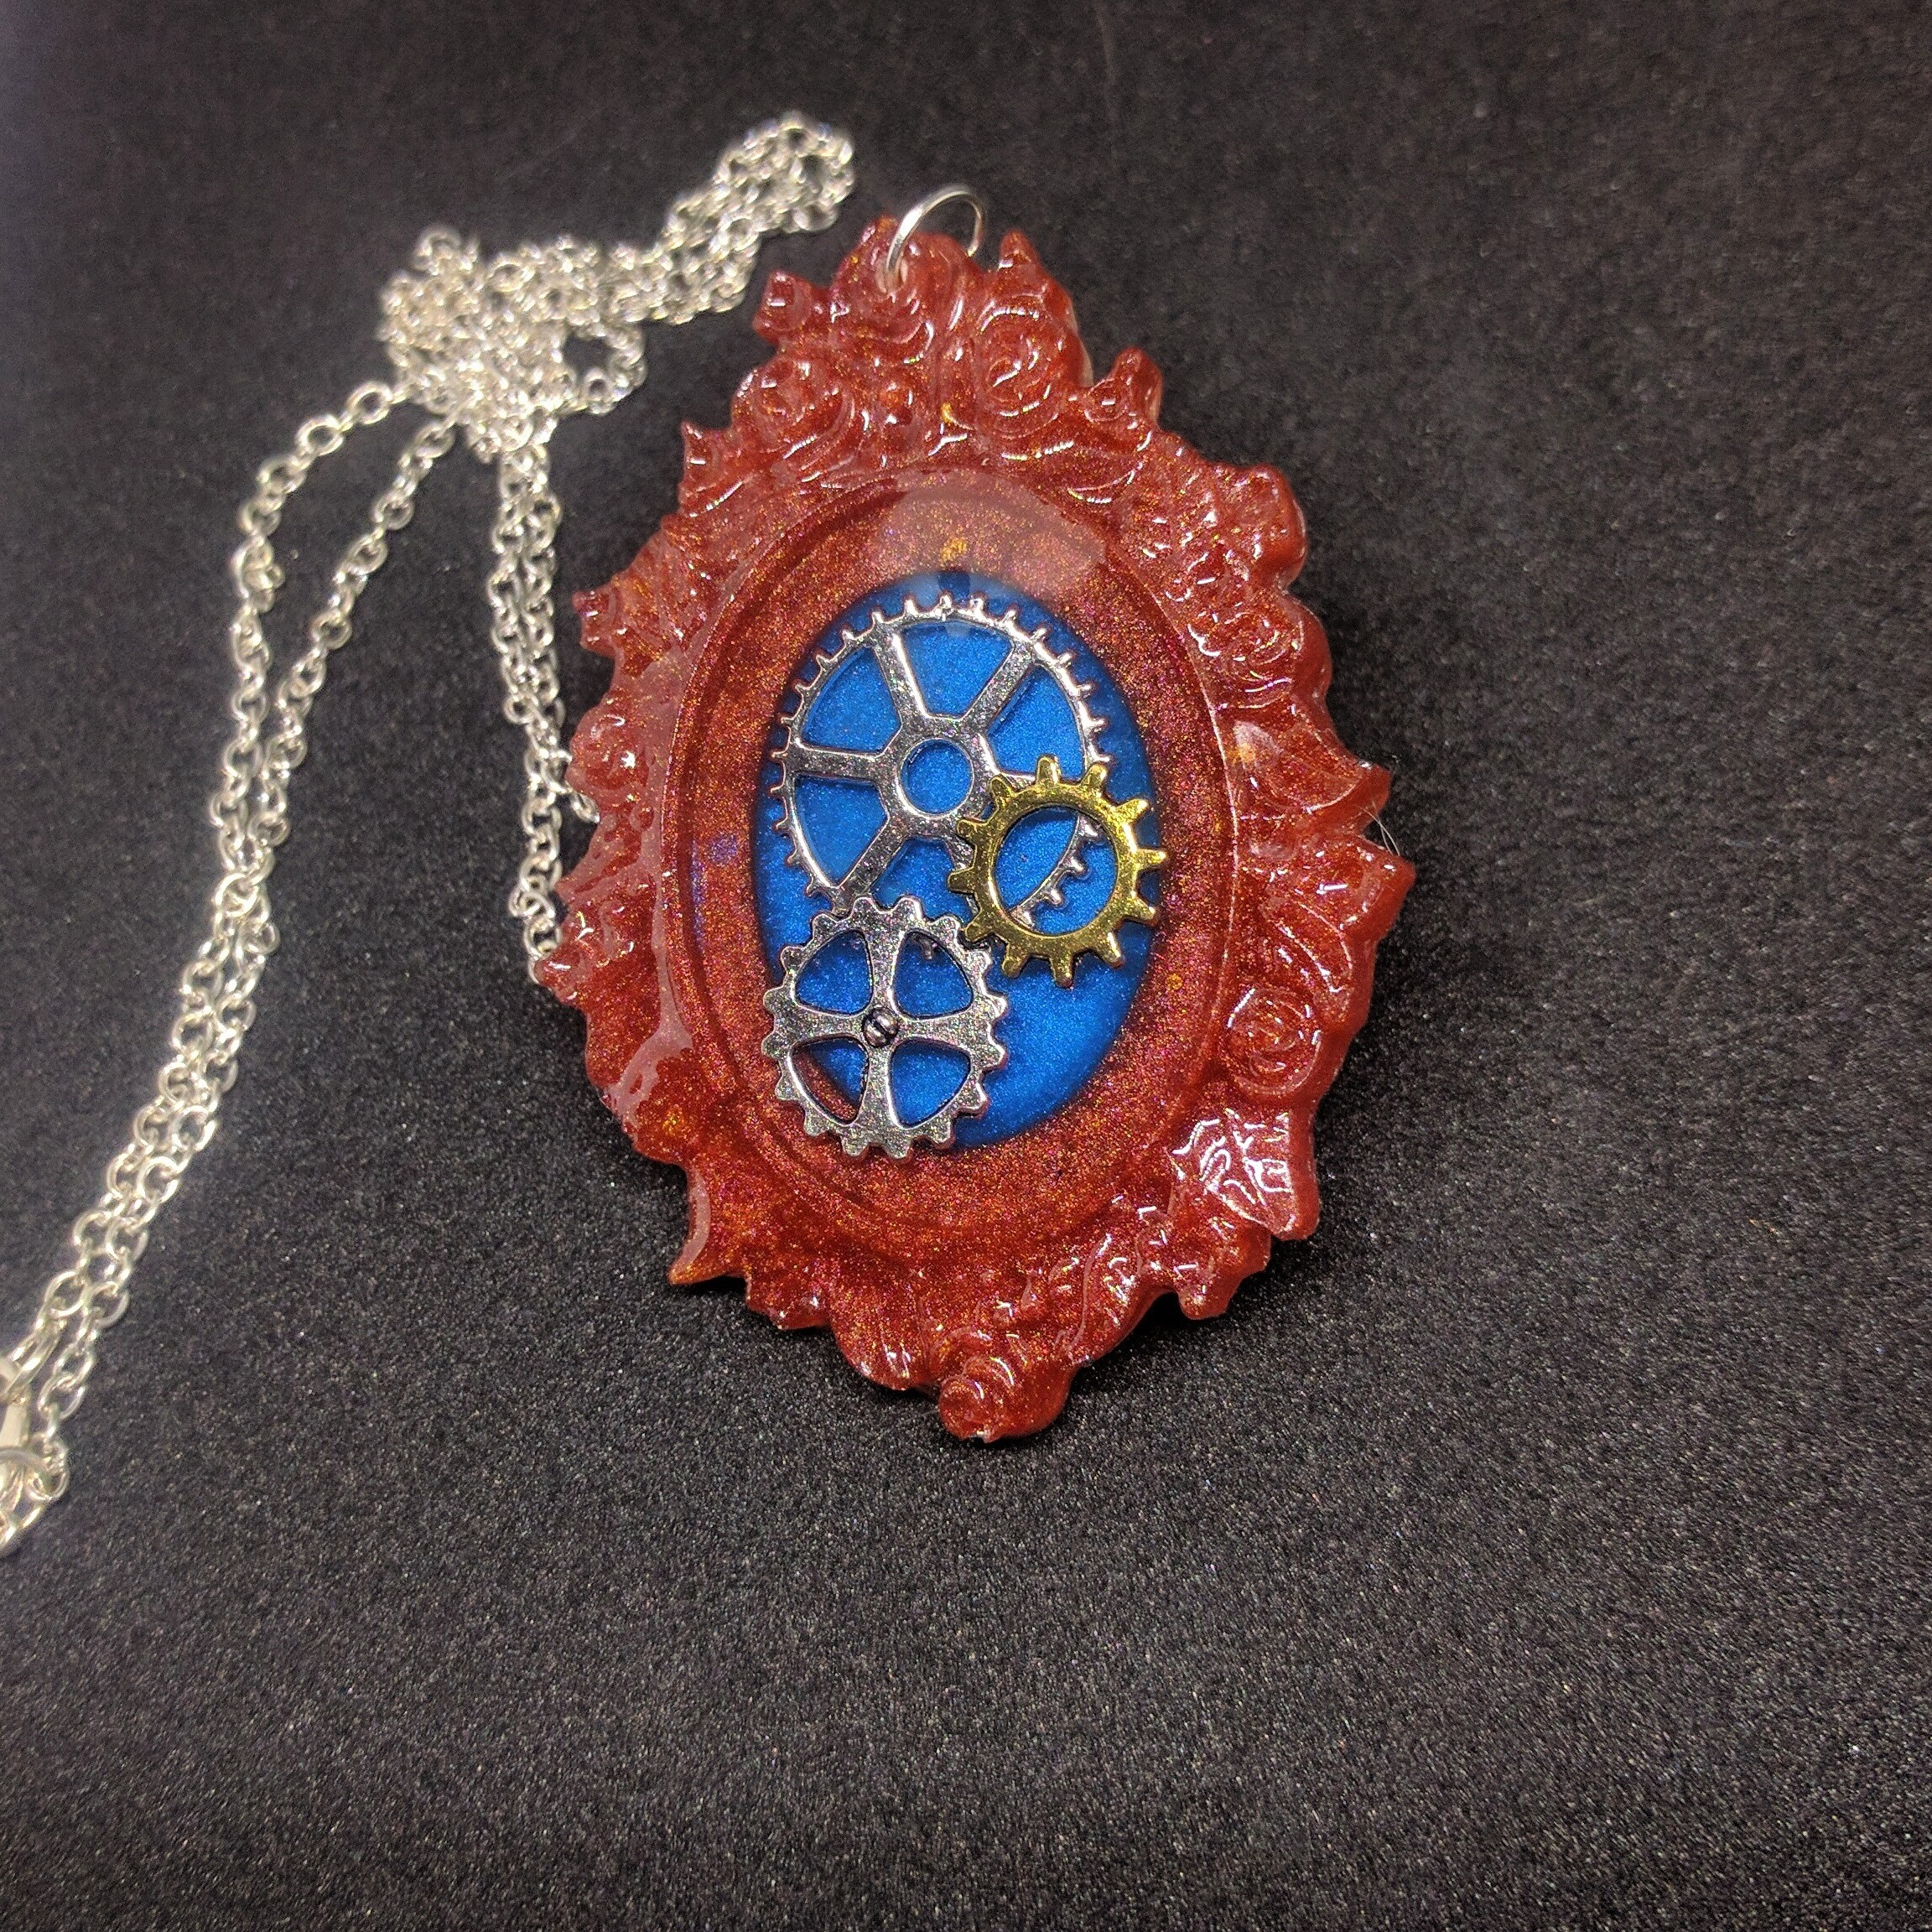 Epoxy pendant with gears